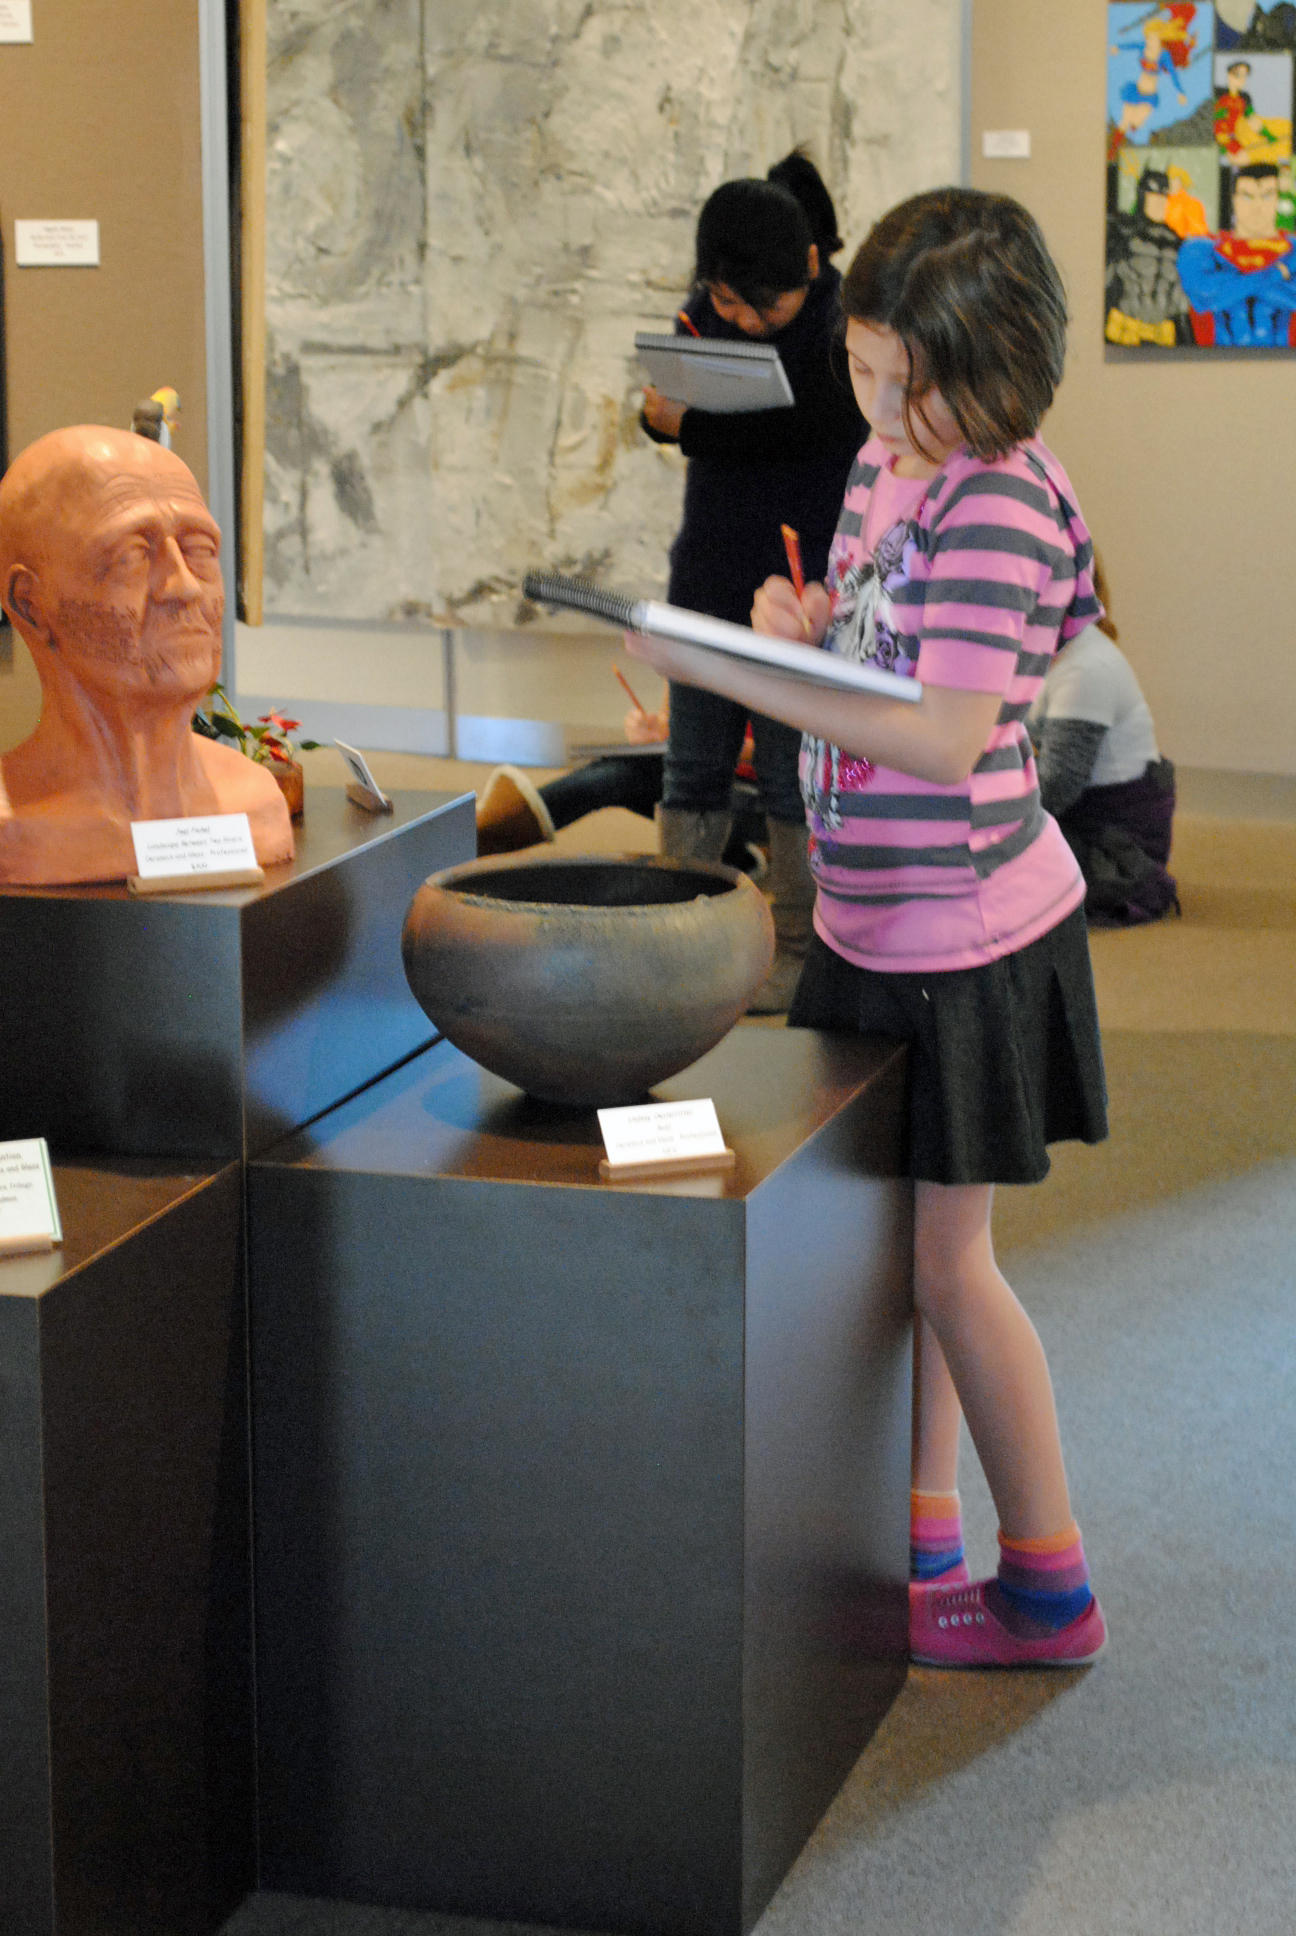 girl sketching in art gallery